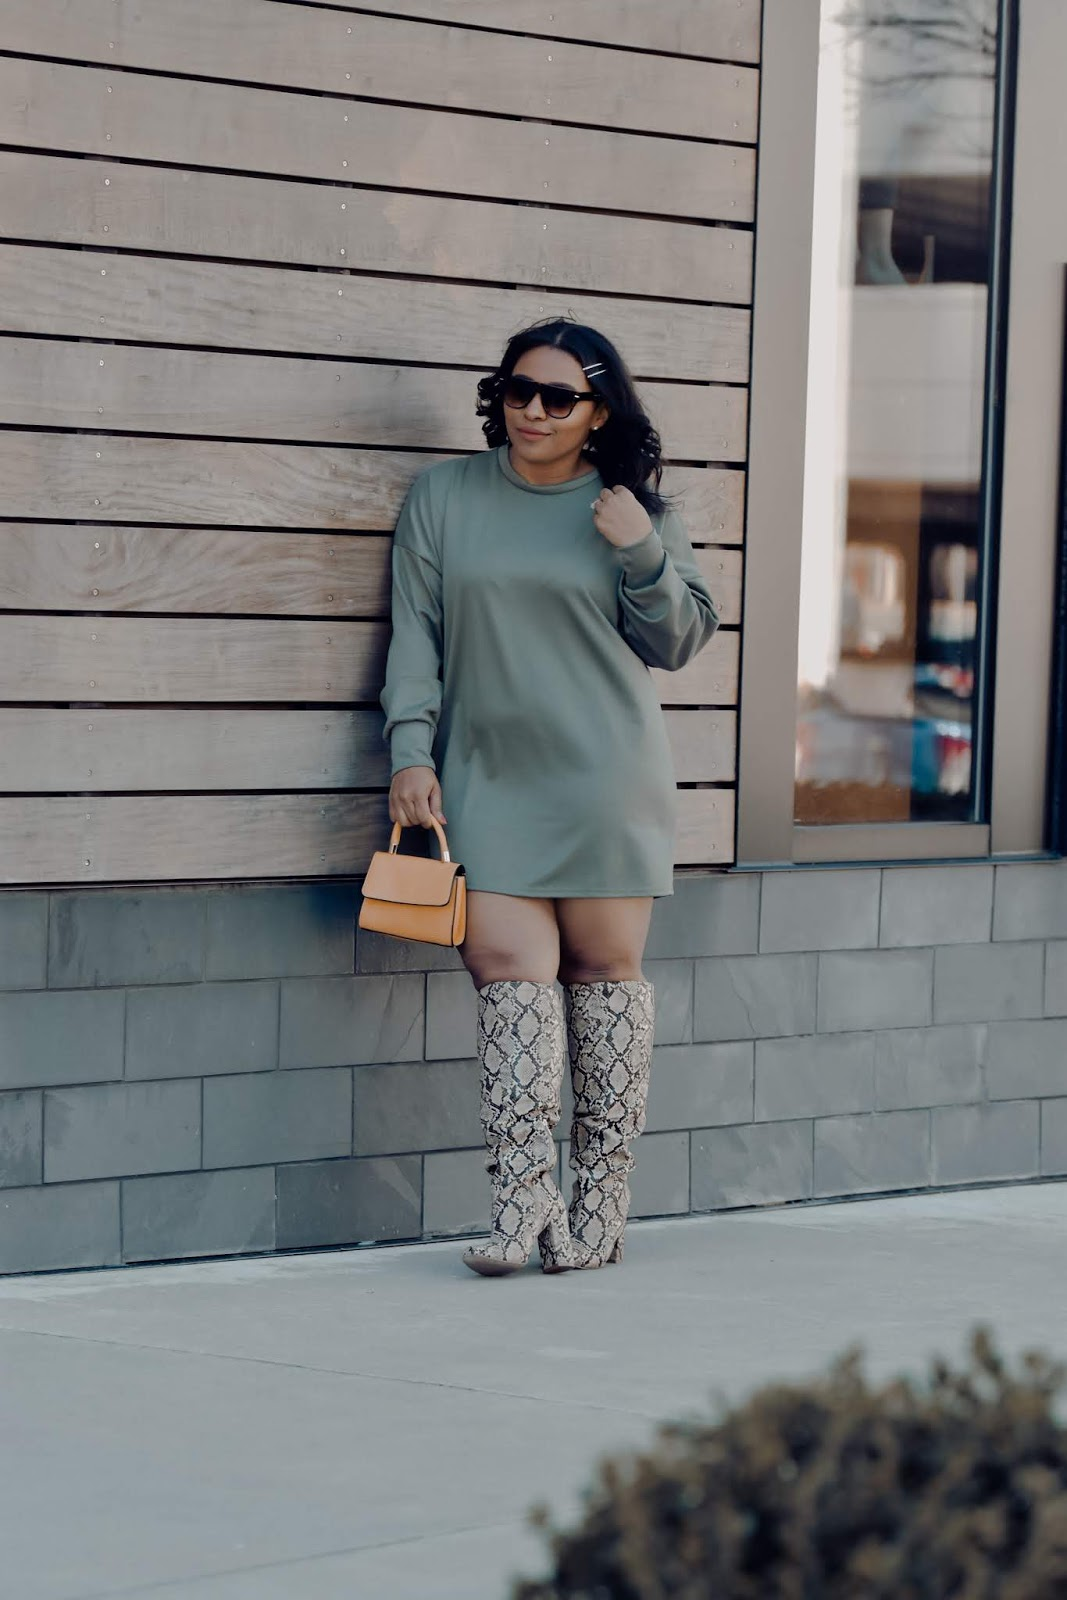 Femme luxe, luxe gal, pattys kloset, spring outfit ideas, otk boots, over the knee boots outfits, spring over the knee boots, snake print boots